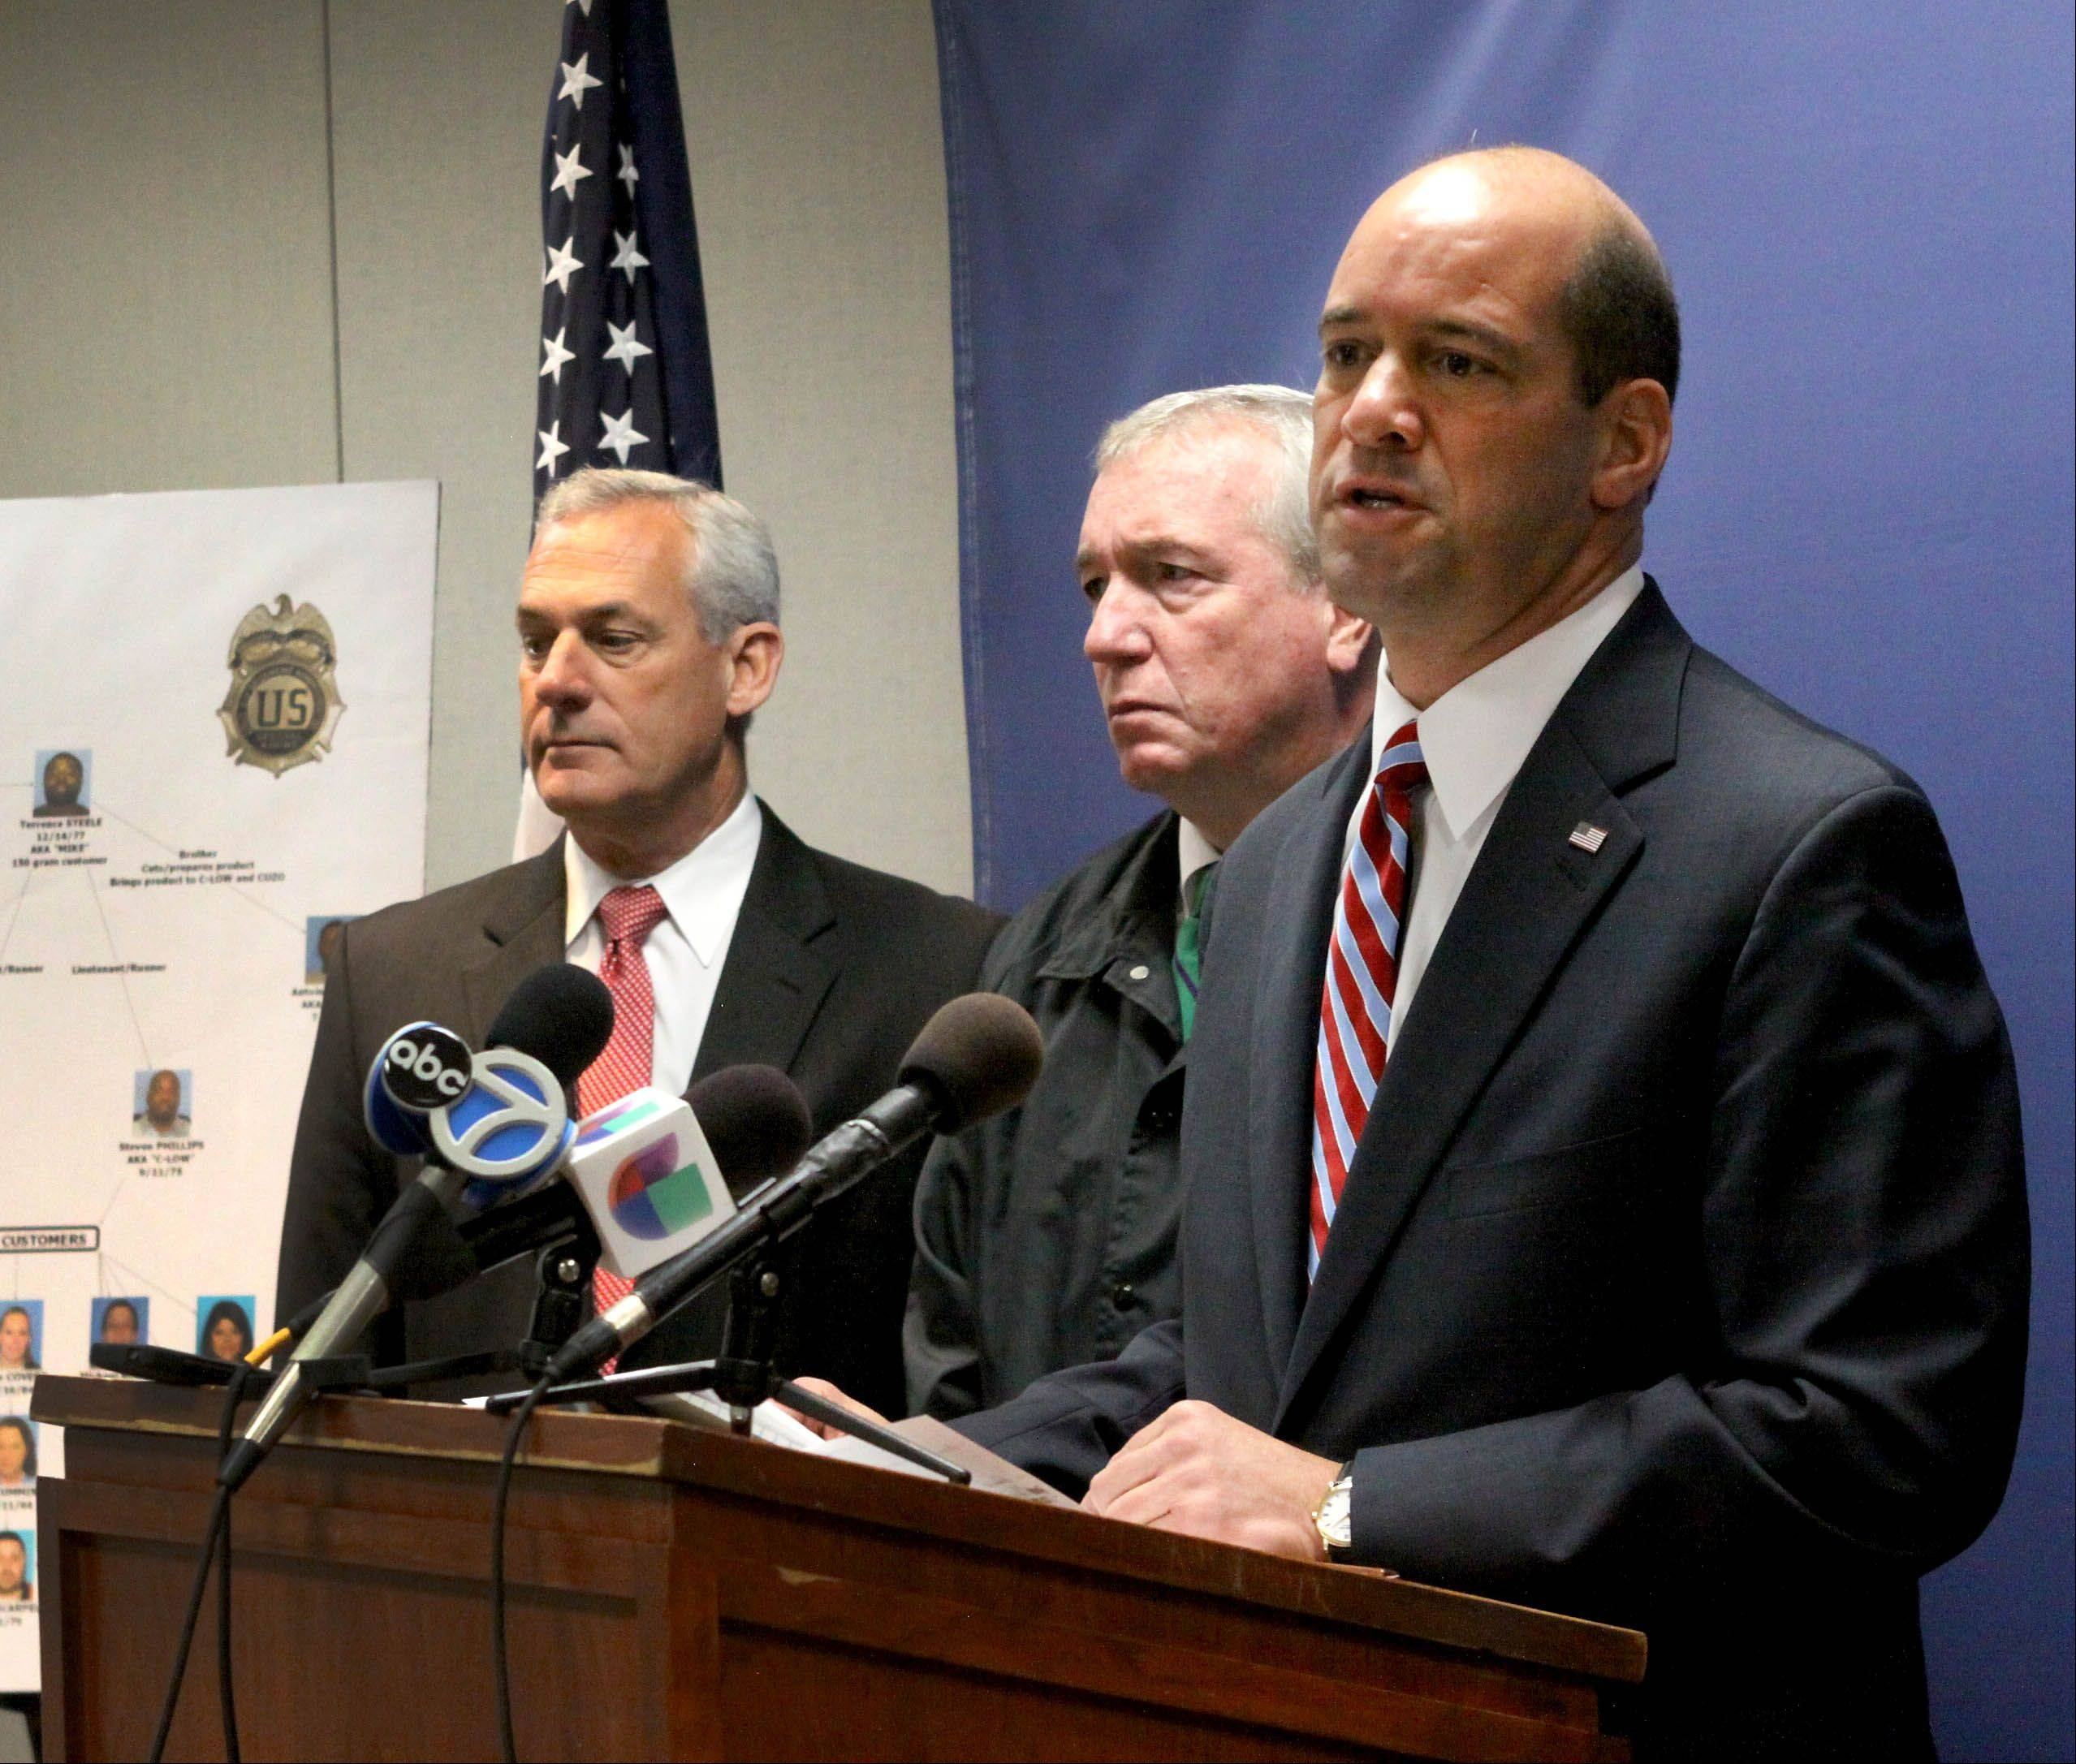 31 charged in DuPage County heroin bust